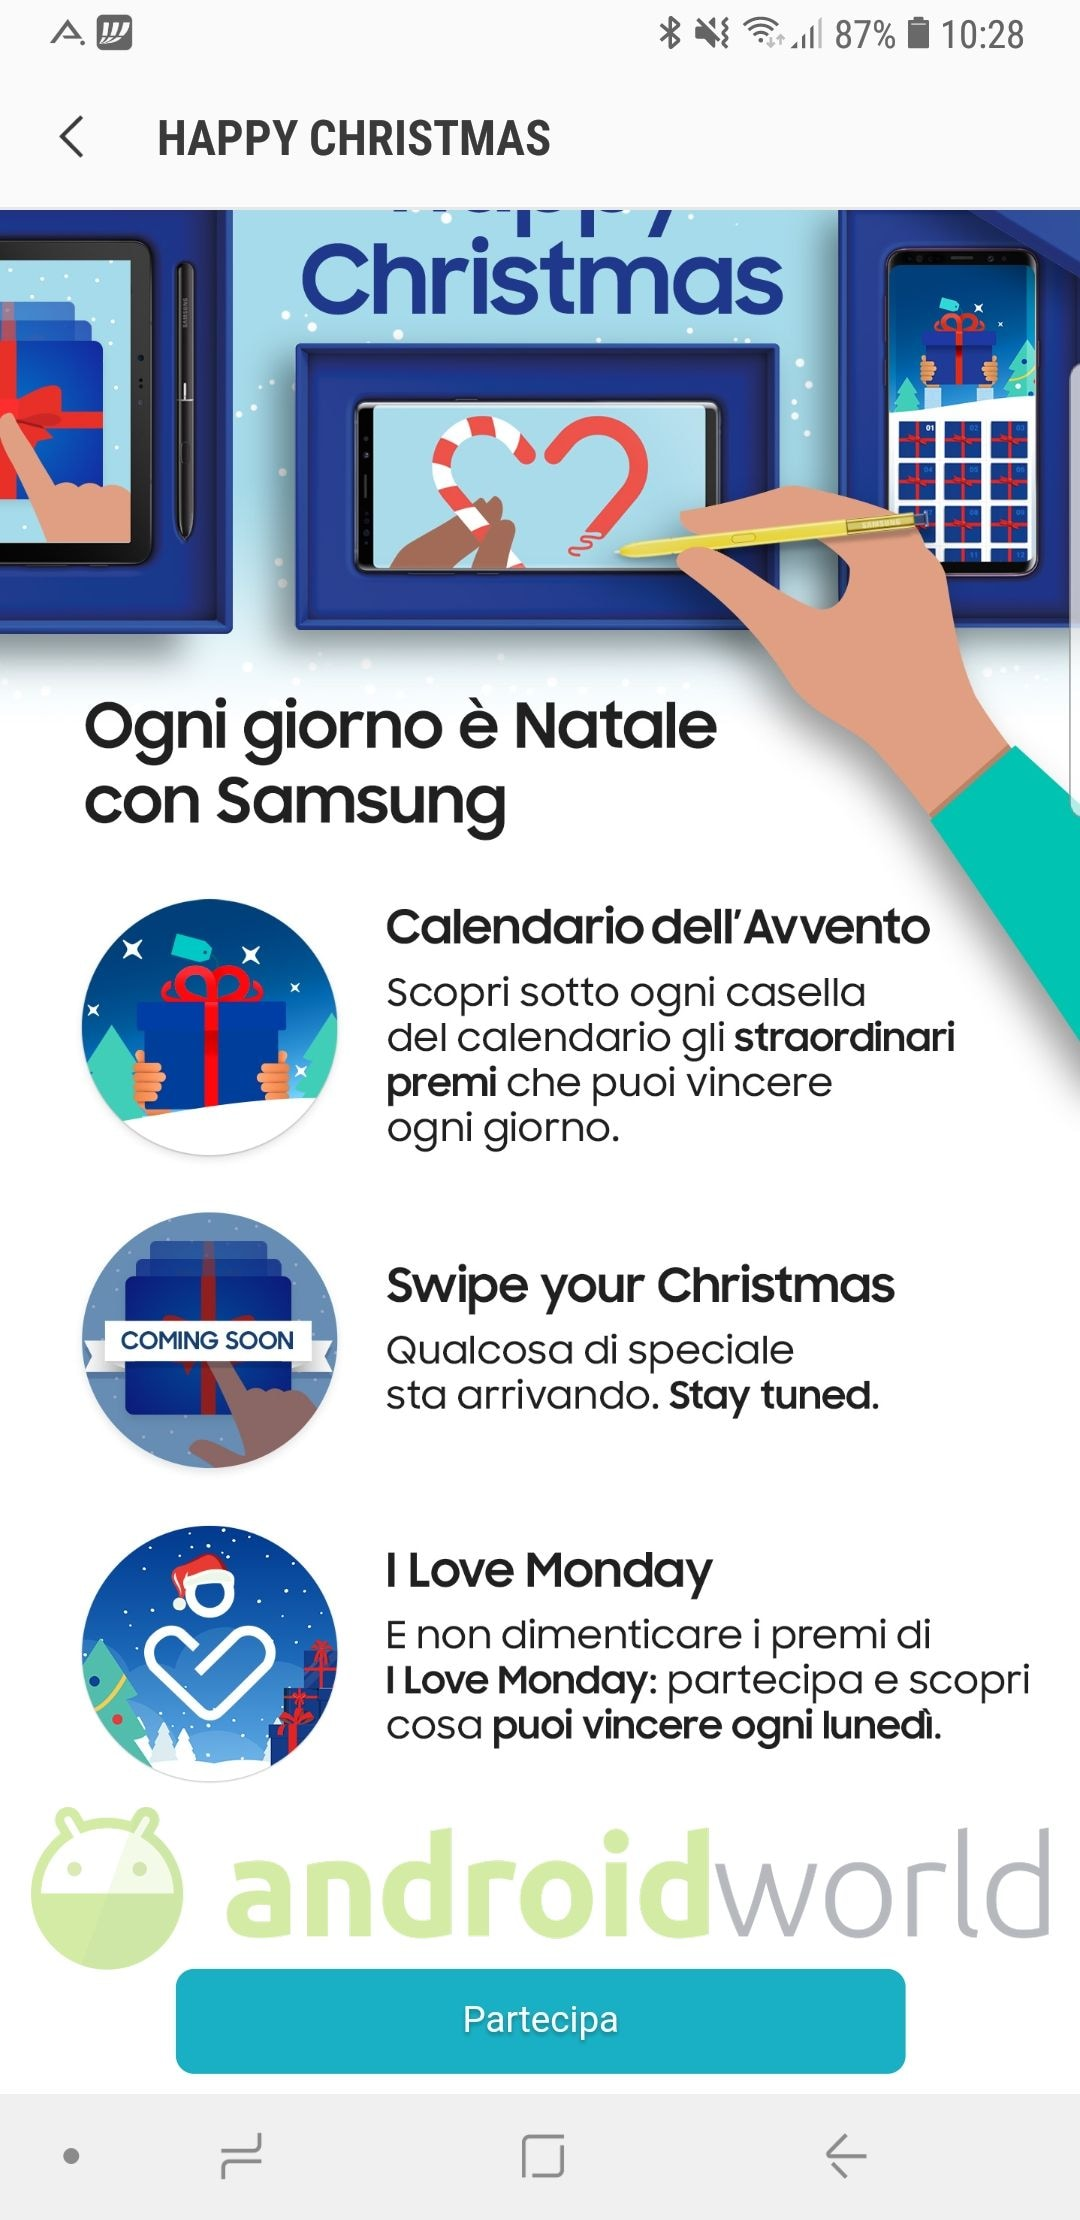 samsung-members-calendario-avvento-2018-premi-01